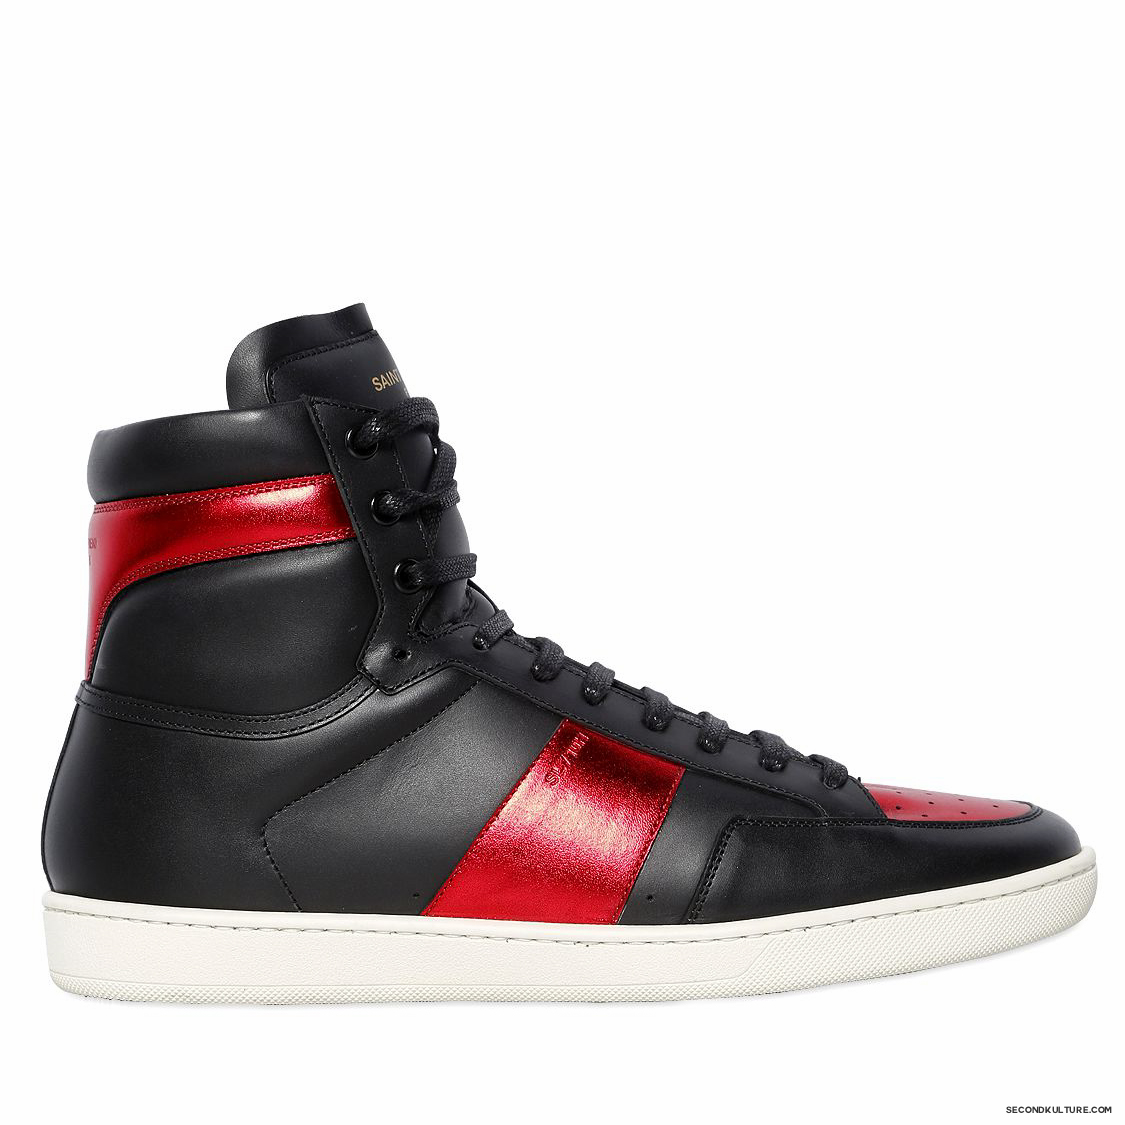 Saint-Laurent-Black-and-Red-Lame-Leather-SL10H-High-Top-Sneakers-Fall-Winter-2015-1